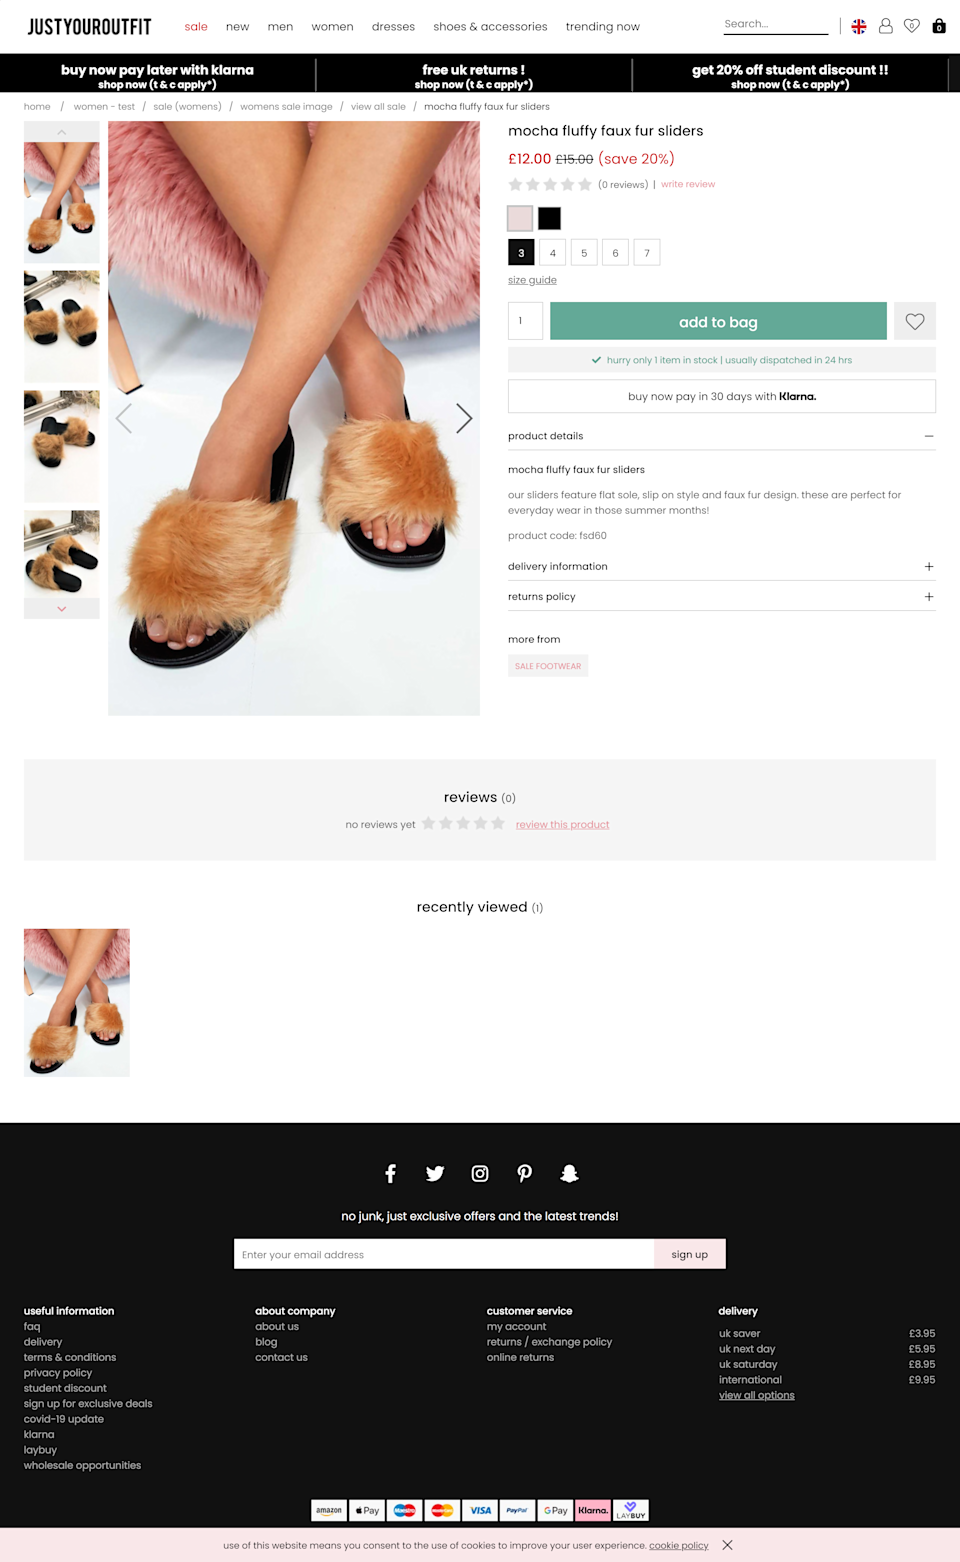 An ad for 'faux fur' sliders on the Just Your Website which was investigated by the ASA (ASA/PA)